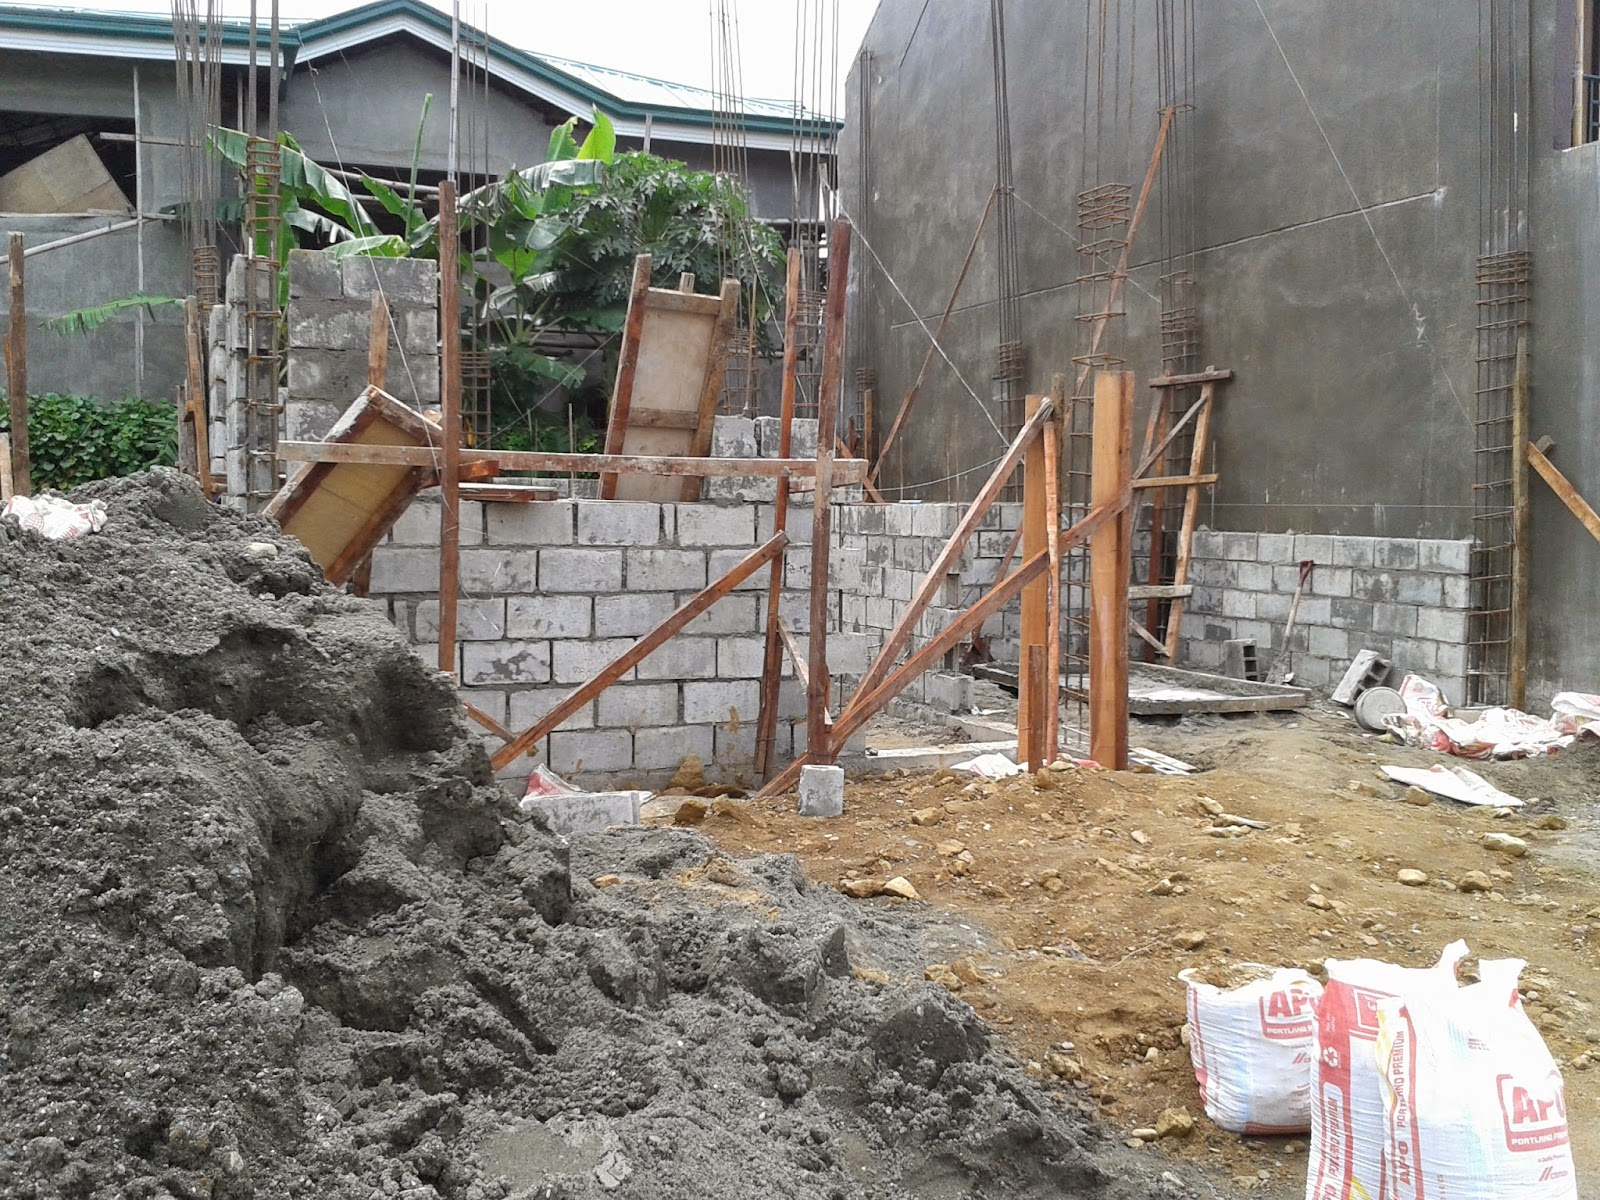 Two storey 2 bedroom home fitting in an 80 square meter 8 meters x - House Models Iloilo Avanti Builders Iloilo 80 Square Meter House Design Iloilo Design For House Construction